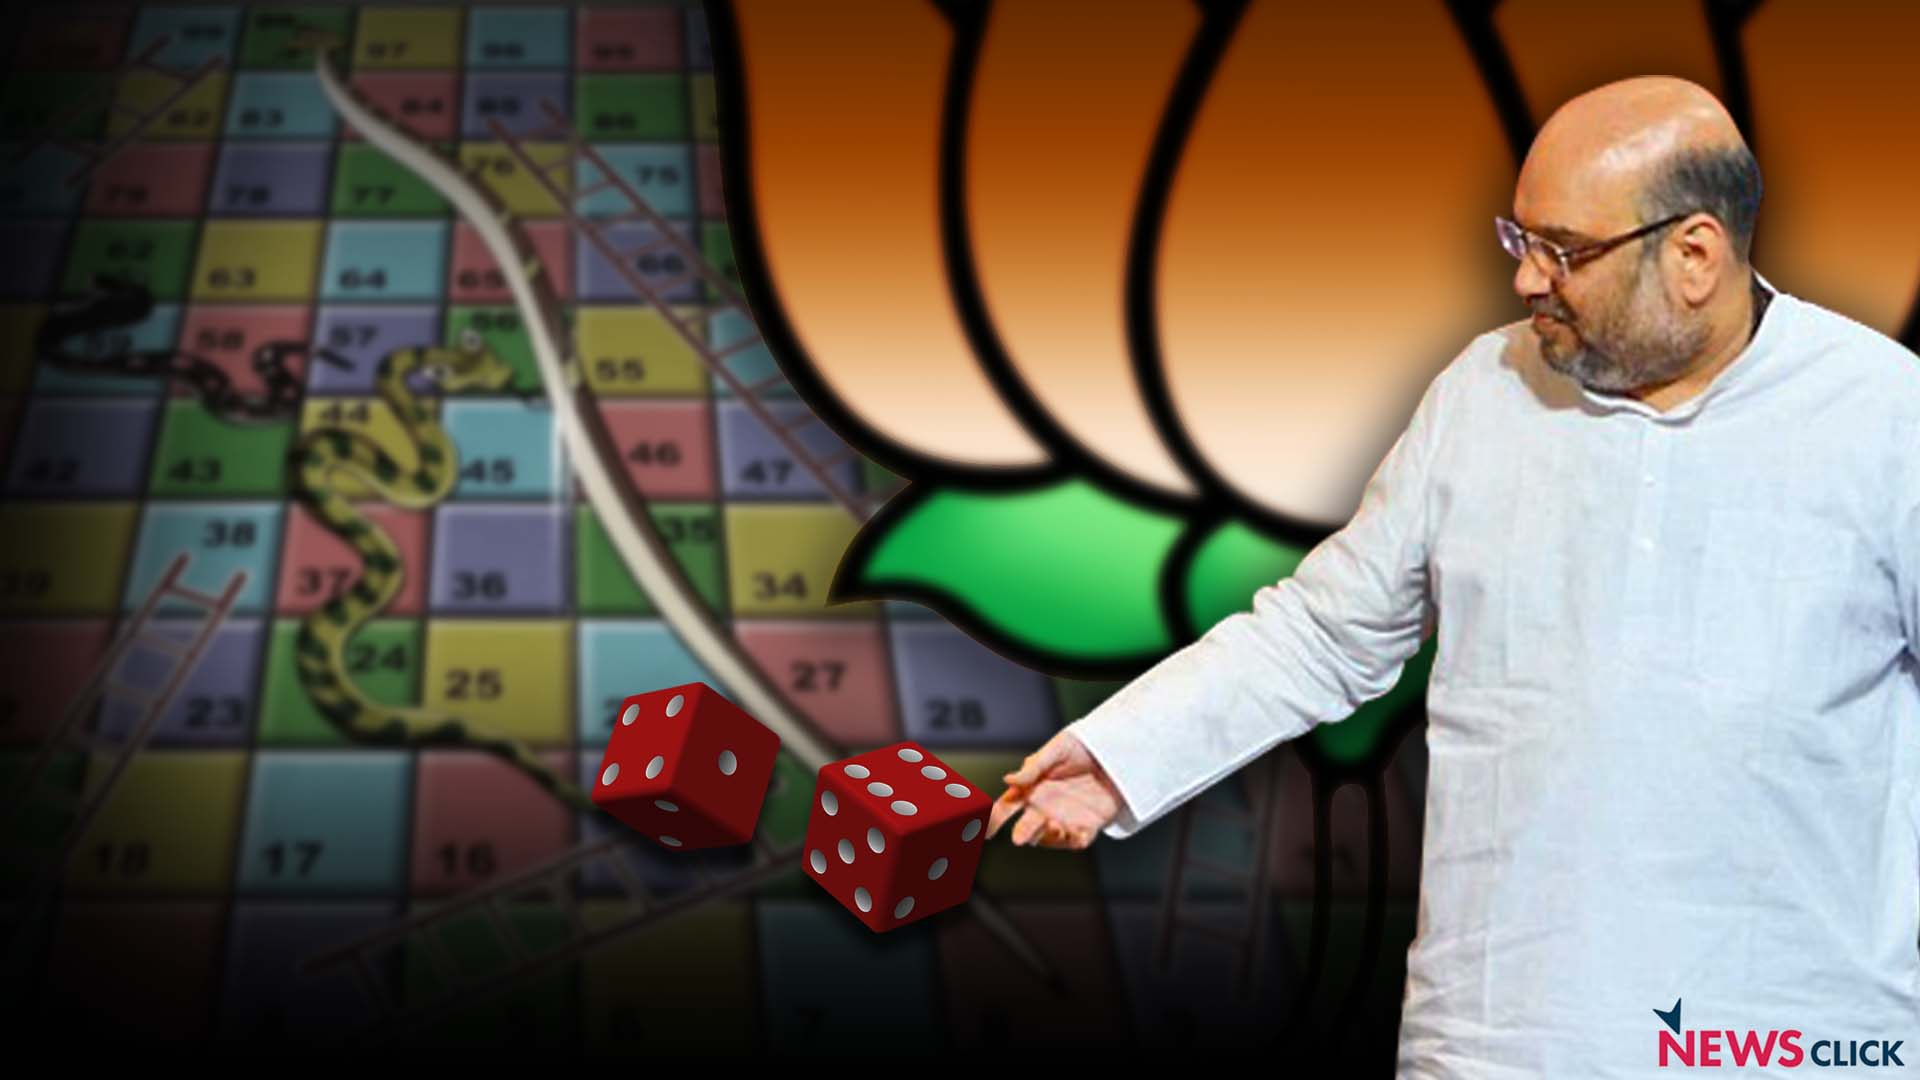 BJP's game of electoral alliances.